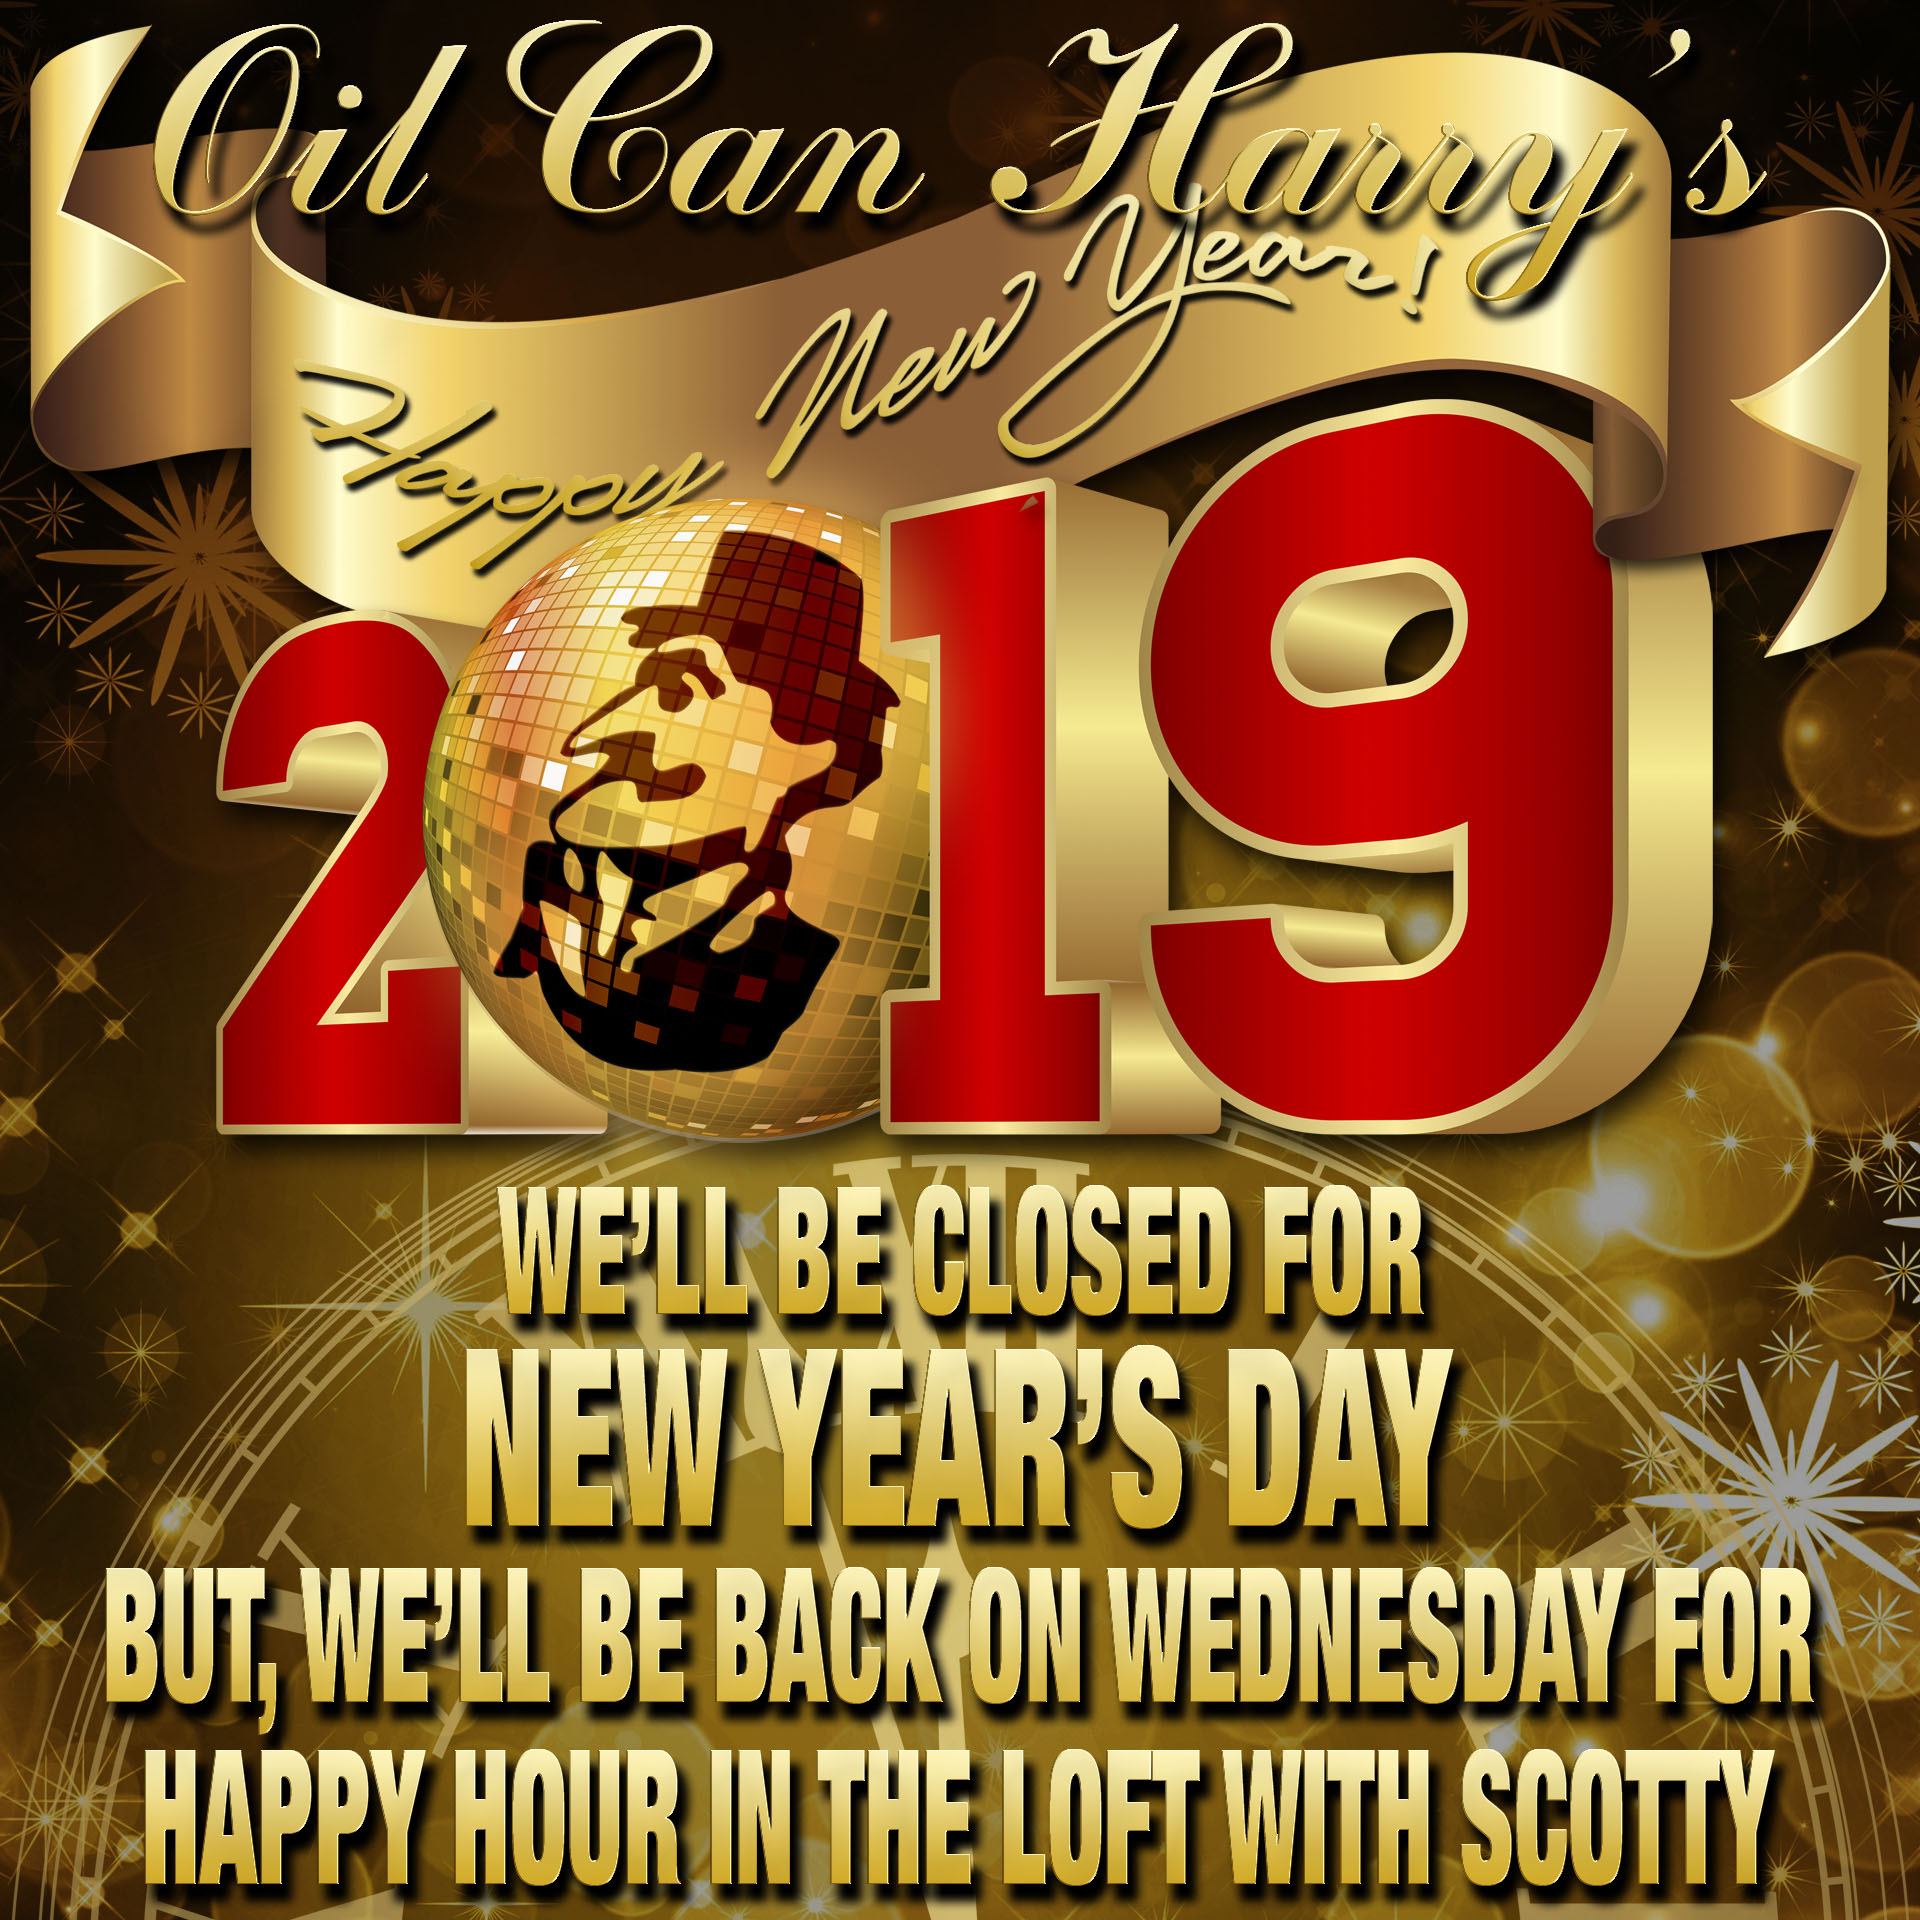 Oil Can Harry's will be closed on New Year's Day, but we'll be back on Wednesday for Happy Hour in The Loft with Scotty on 01/02/19, 3:30 to 7:30 PM.